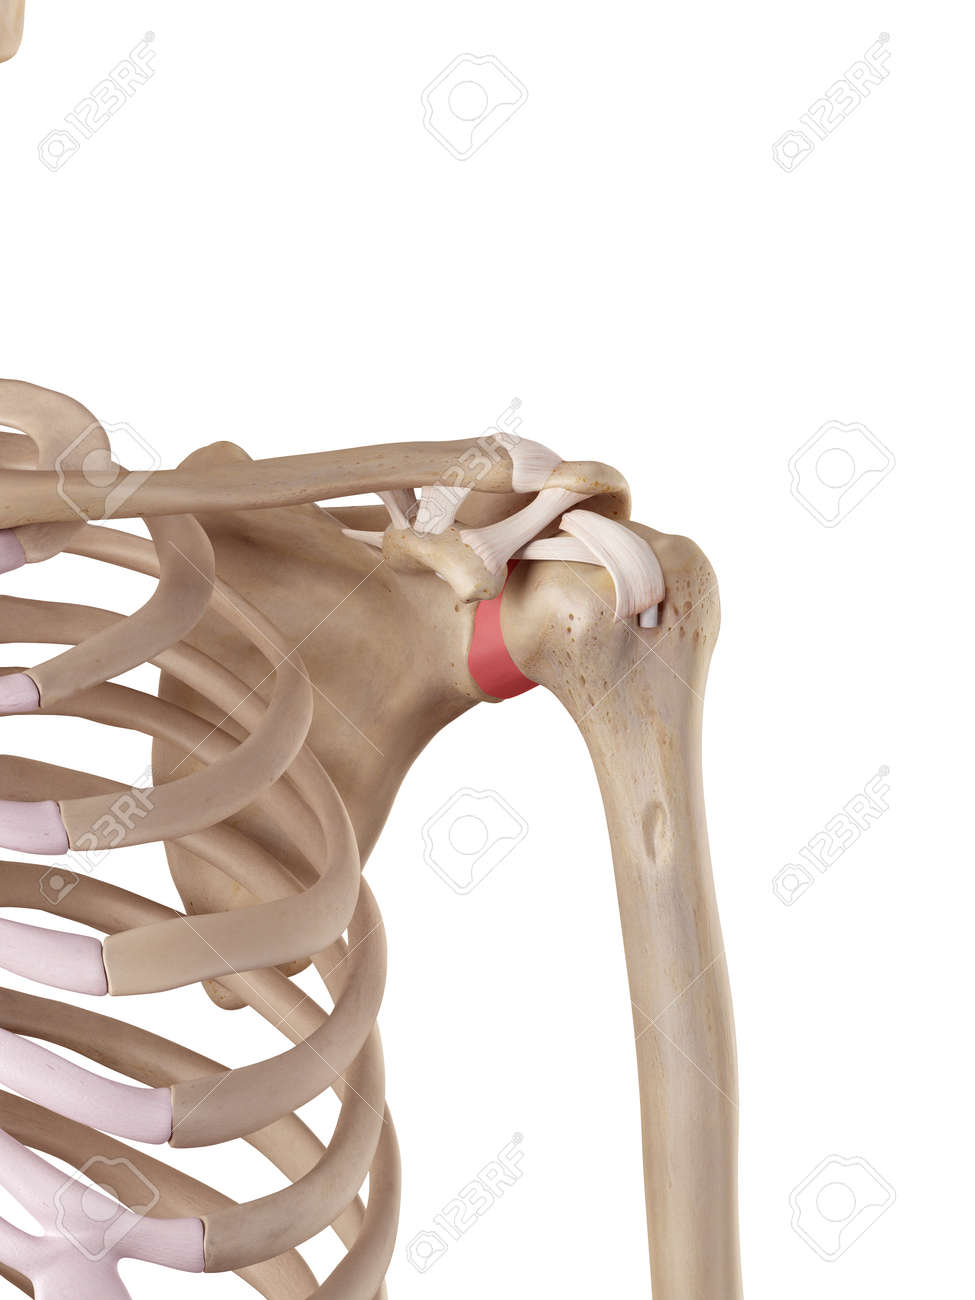 Medical Accurate Illustration Of The Glenohumeral Ligament Stock ...